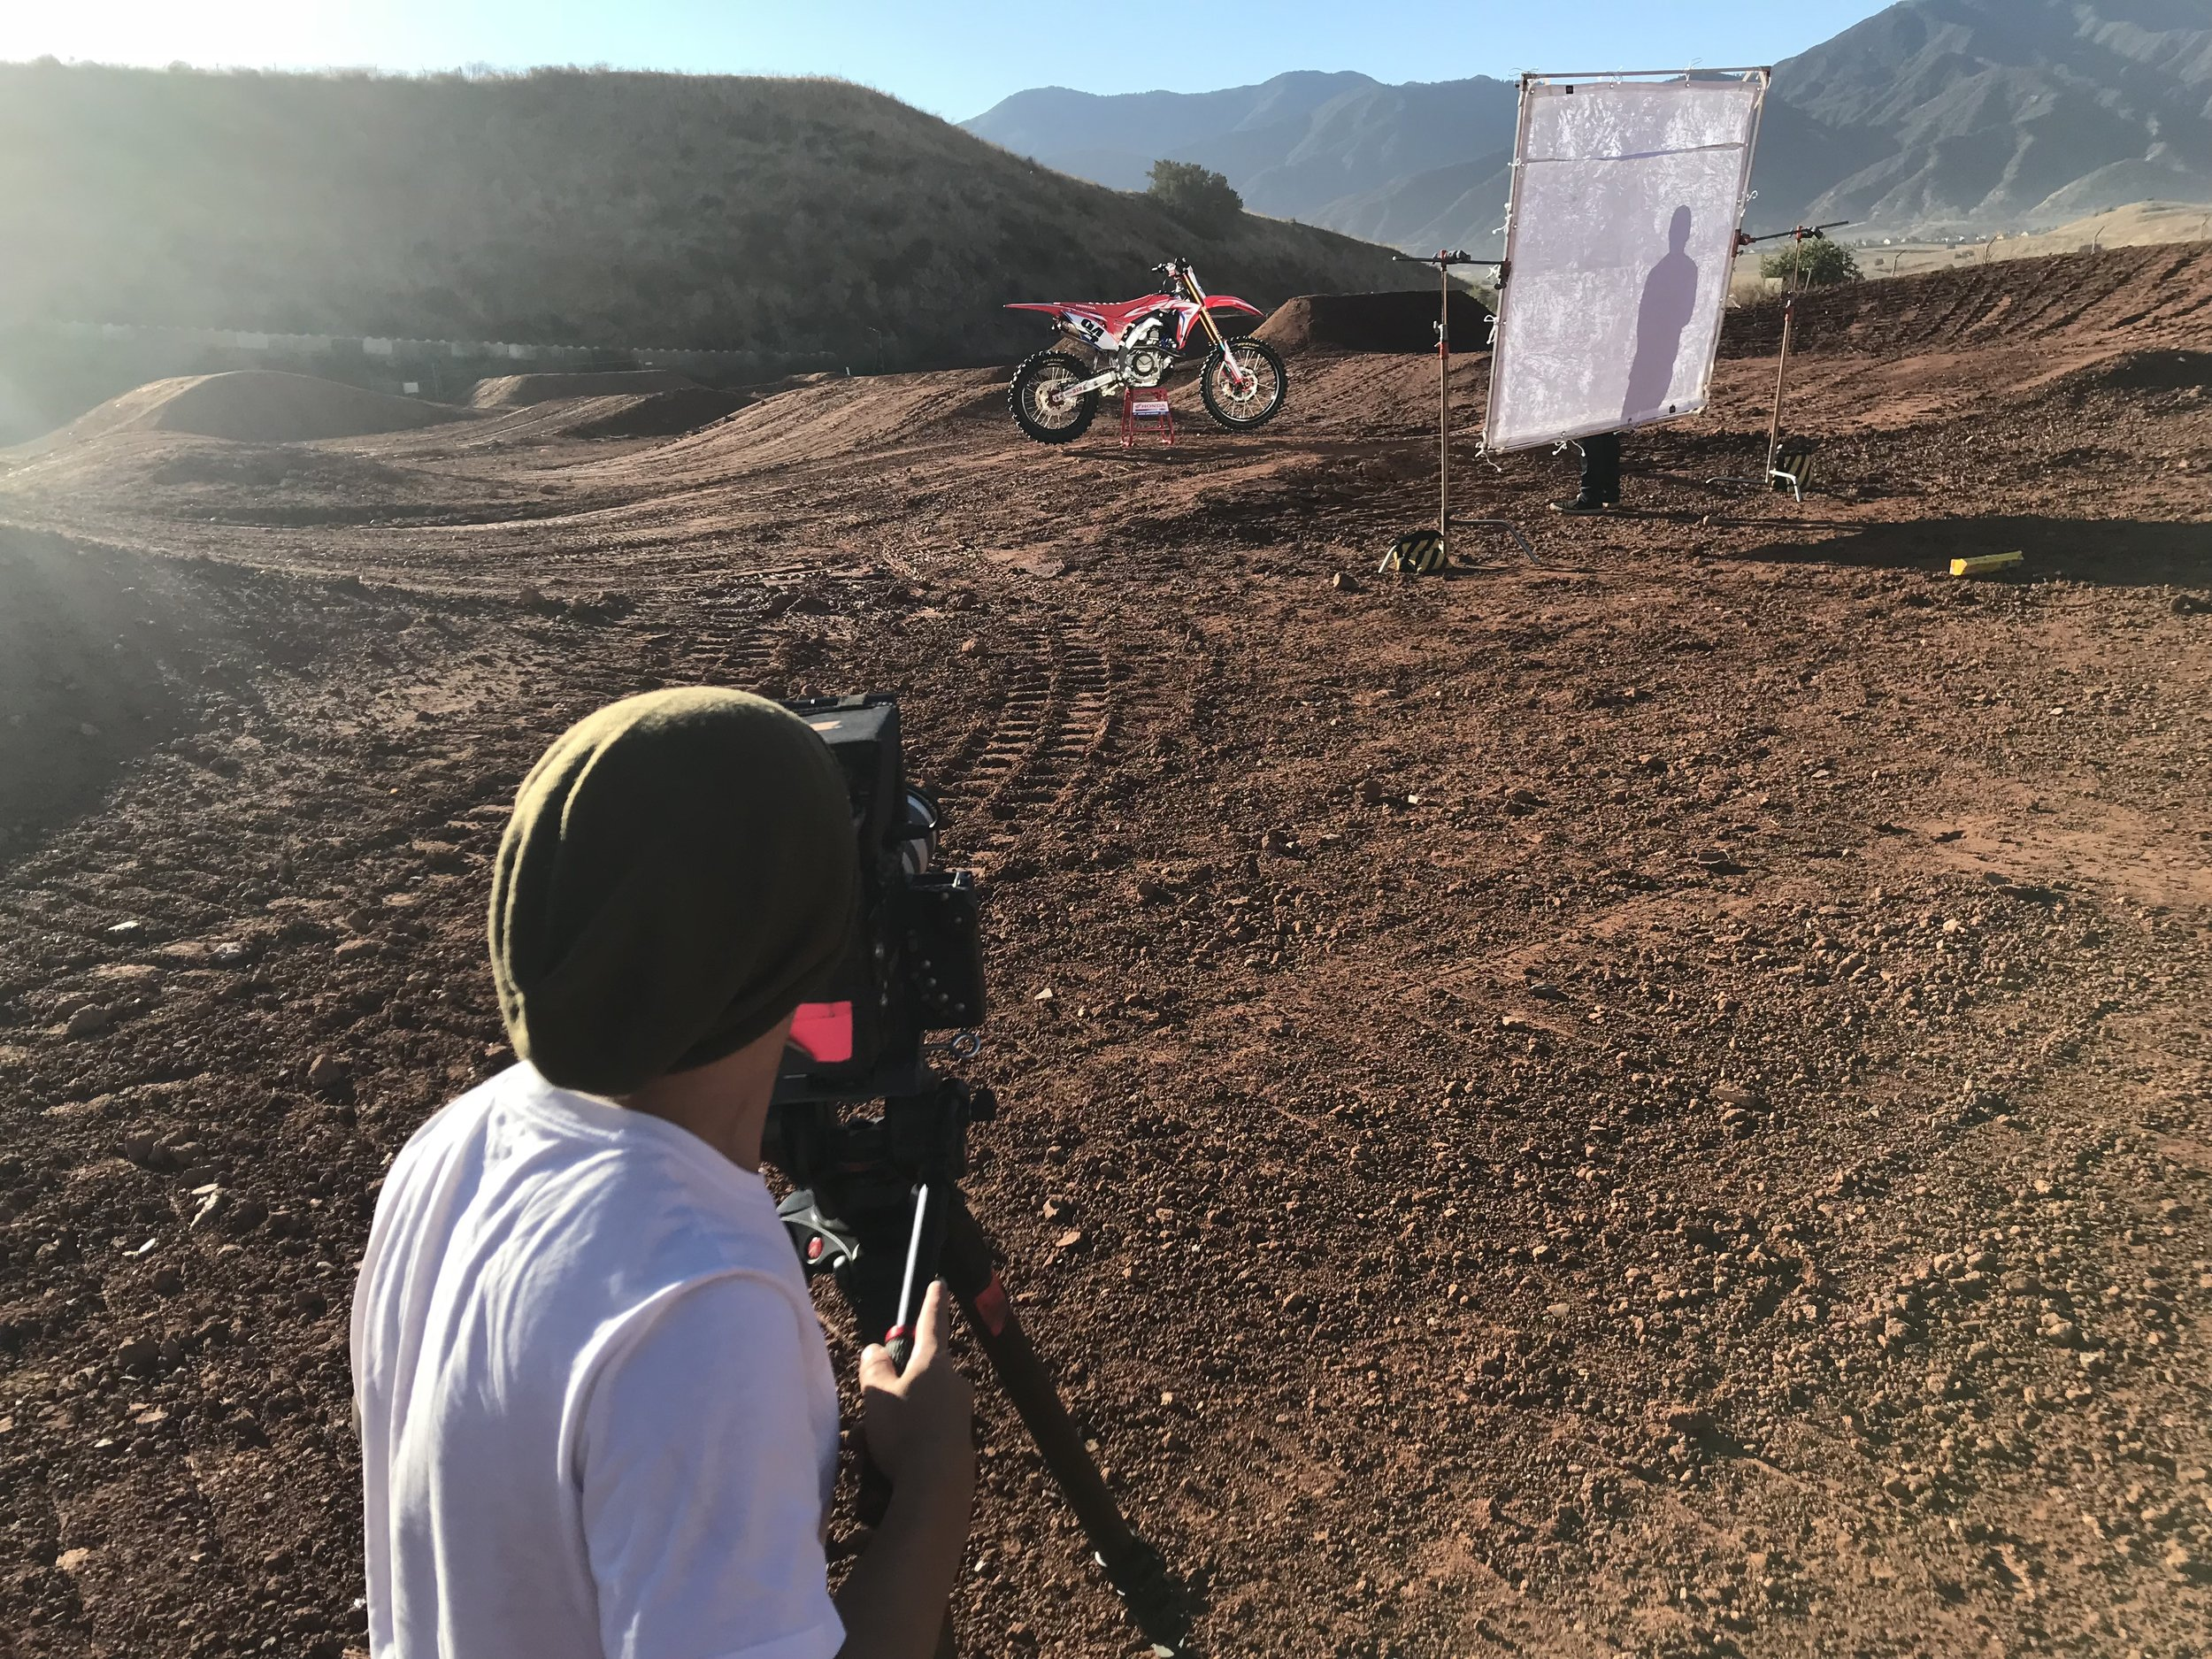 To generate materials for the 2018 season, we held a dedicated photo/video day with riders Ken Roczen and Cole Seely.